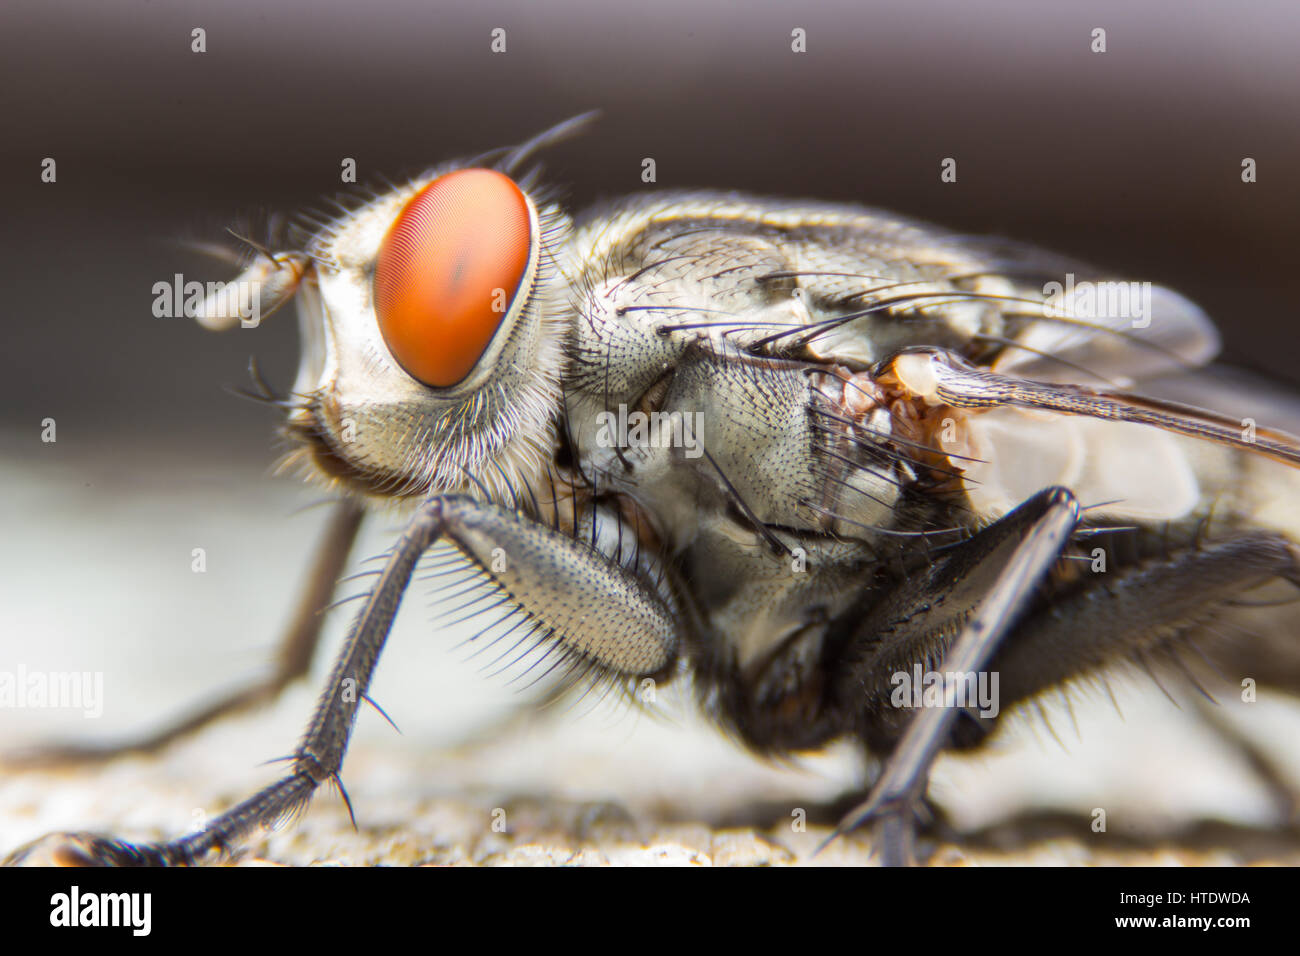 The House Fly dangerous carrier of pathogens. - Stock Image